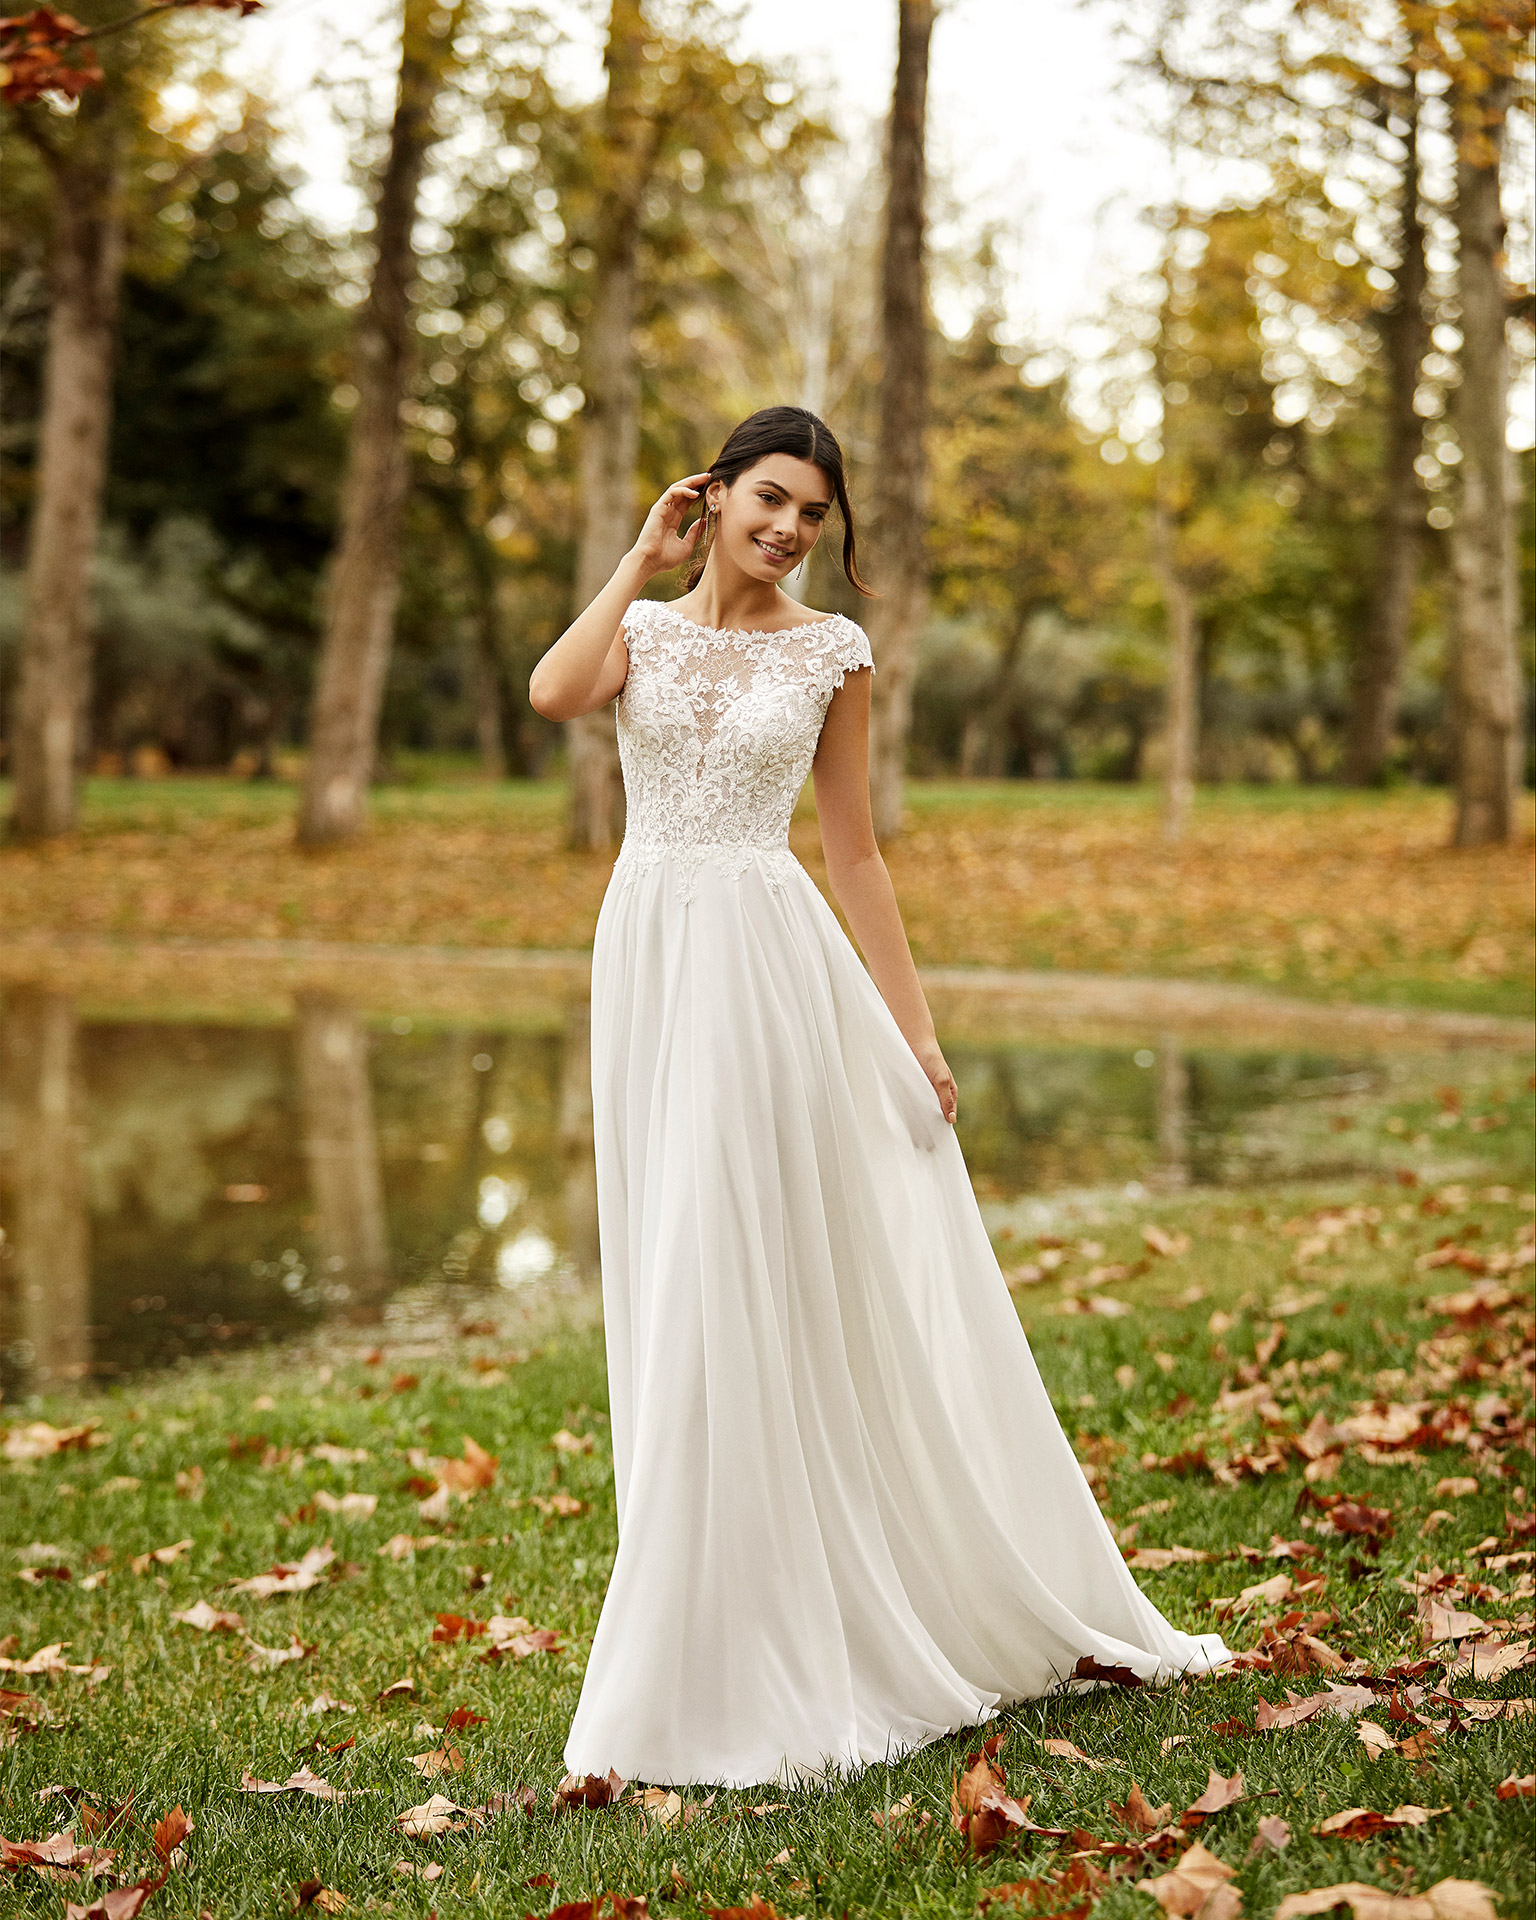 Boho-style lace and chiffon wedding dress with beading and low back. 2020 ALMANOVIA Collection.